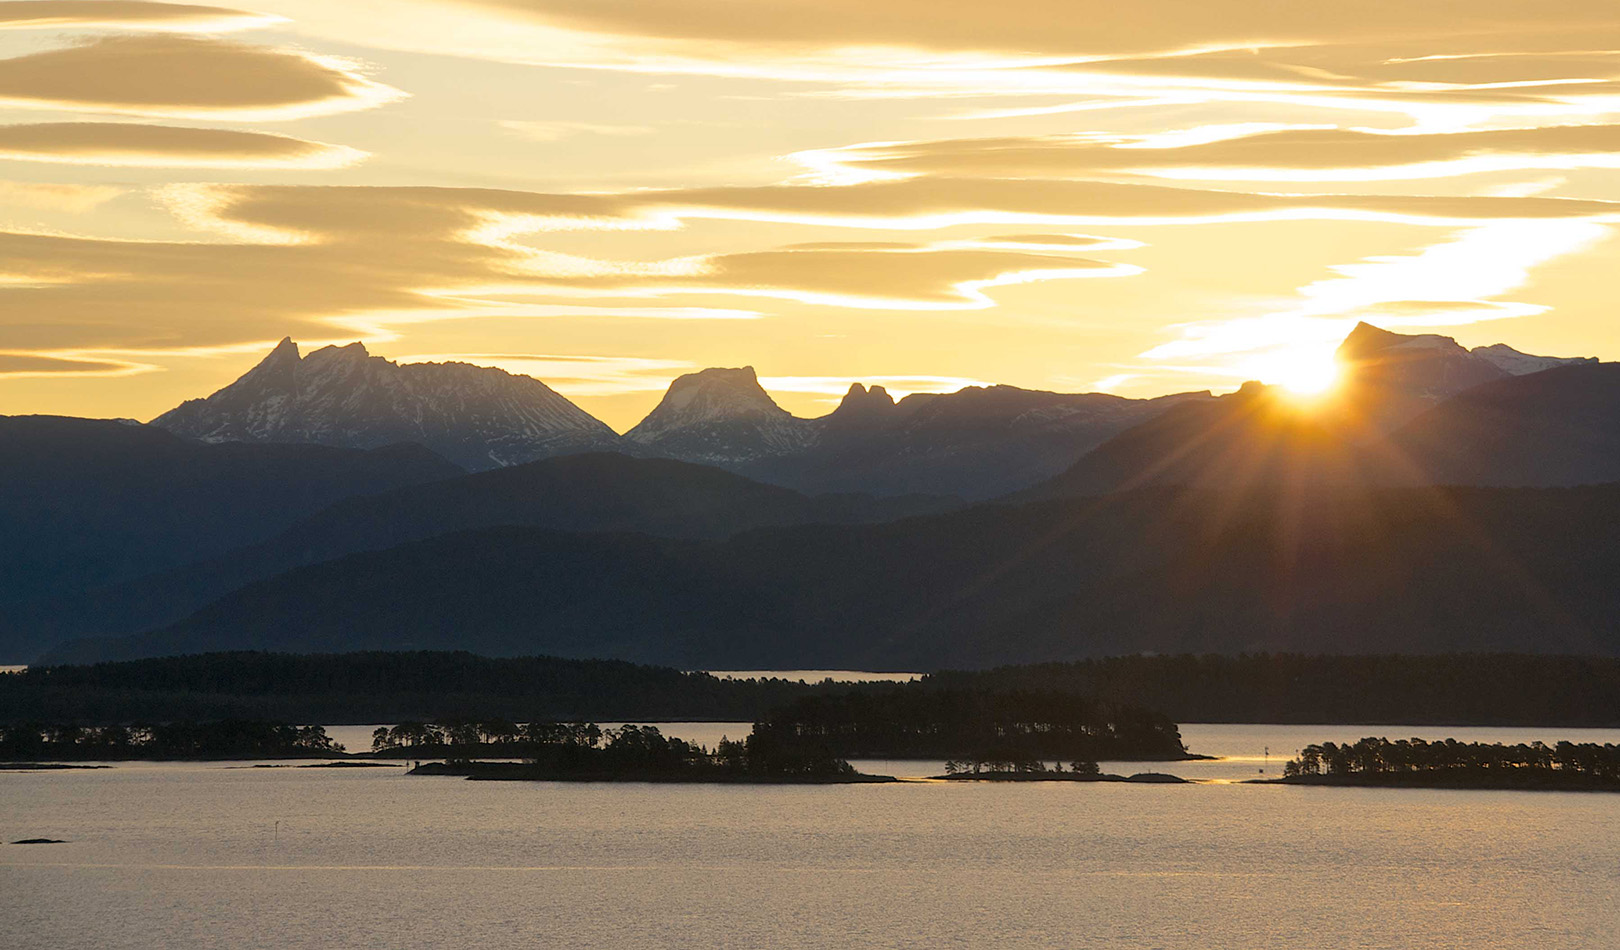 The mighty mountains of Romsdal seen from Molde.